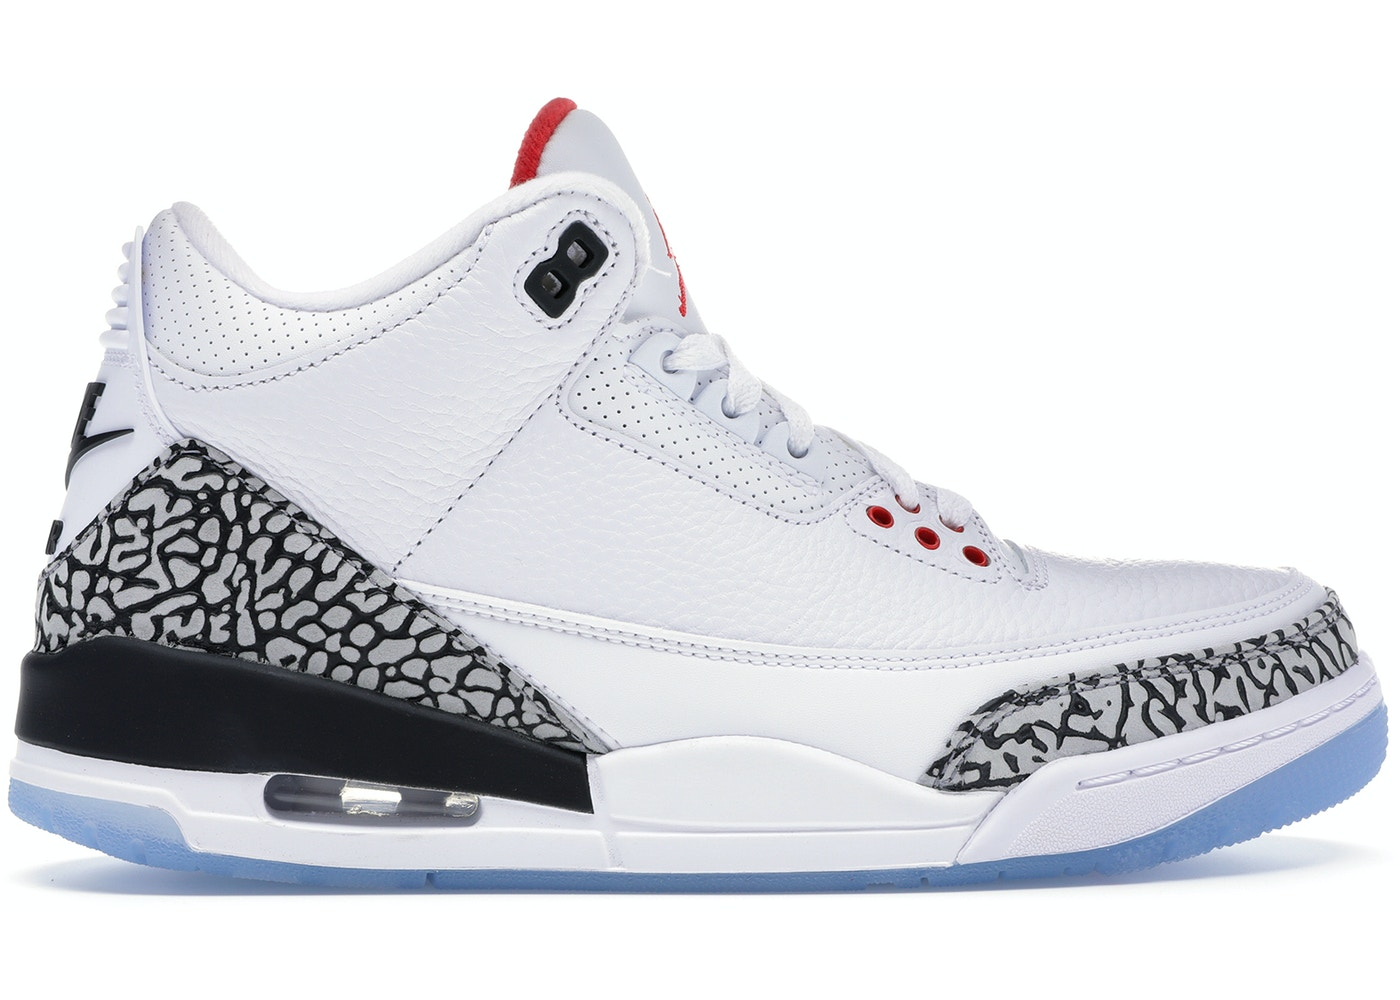 Jordan 3 Retro Free Throw Line White Cement - 923096-101 85b8f3e991b2